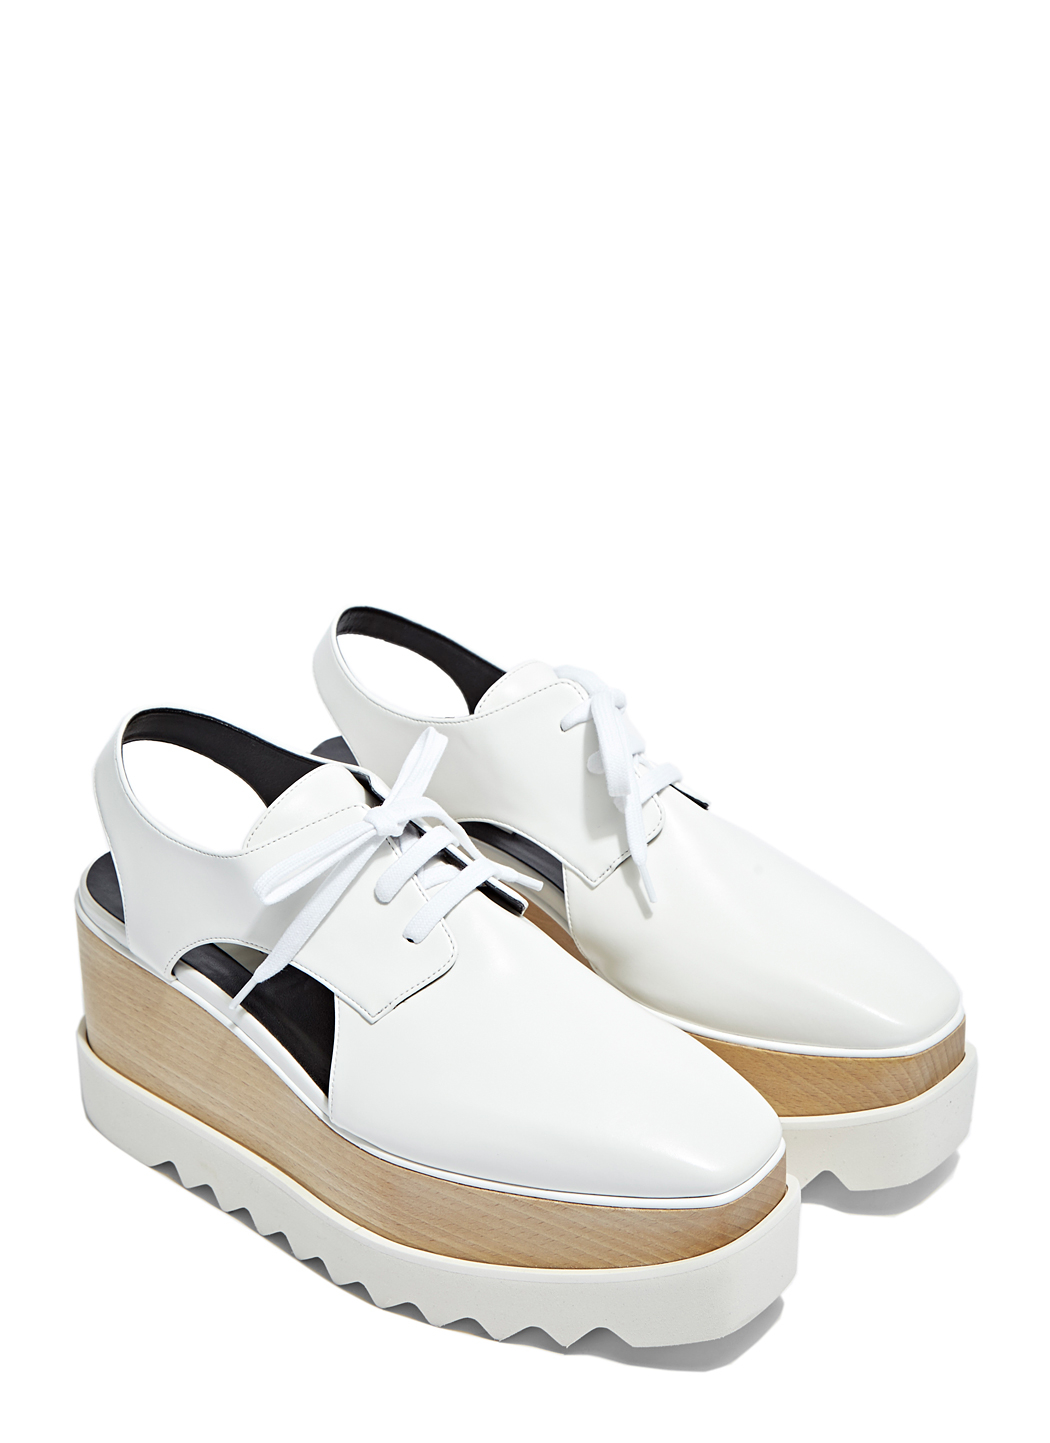 footlocker pictures for sale Stella McCartney 'Elyse' cut-out lace-up shoes clearance authentic buy cheap for cheap clearance big discount XT9SW